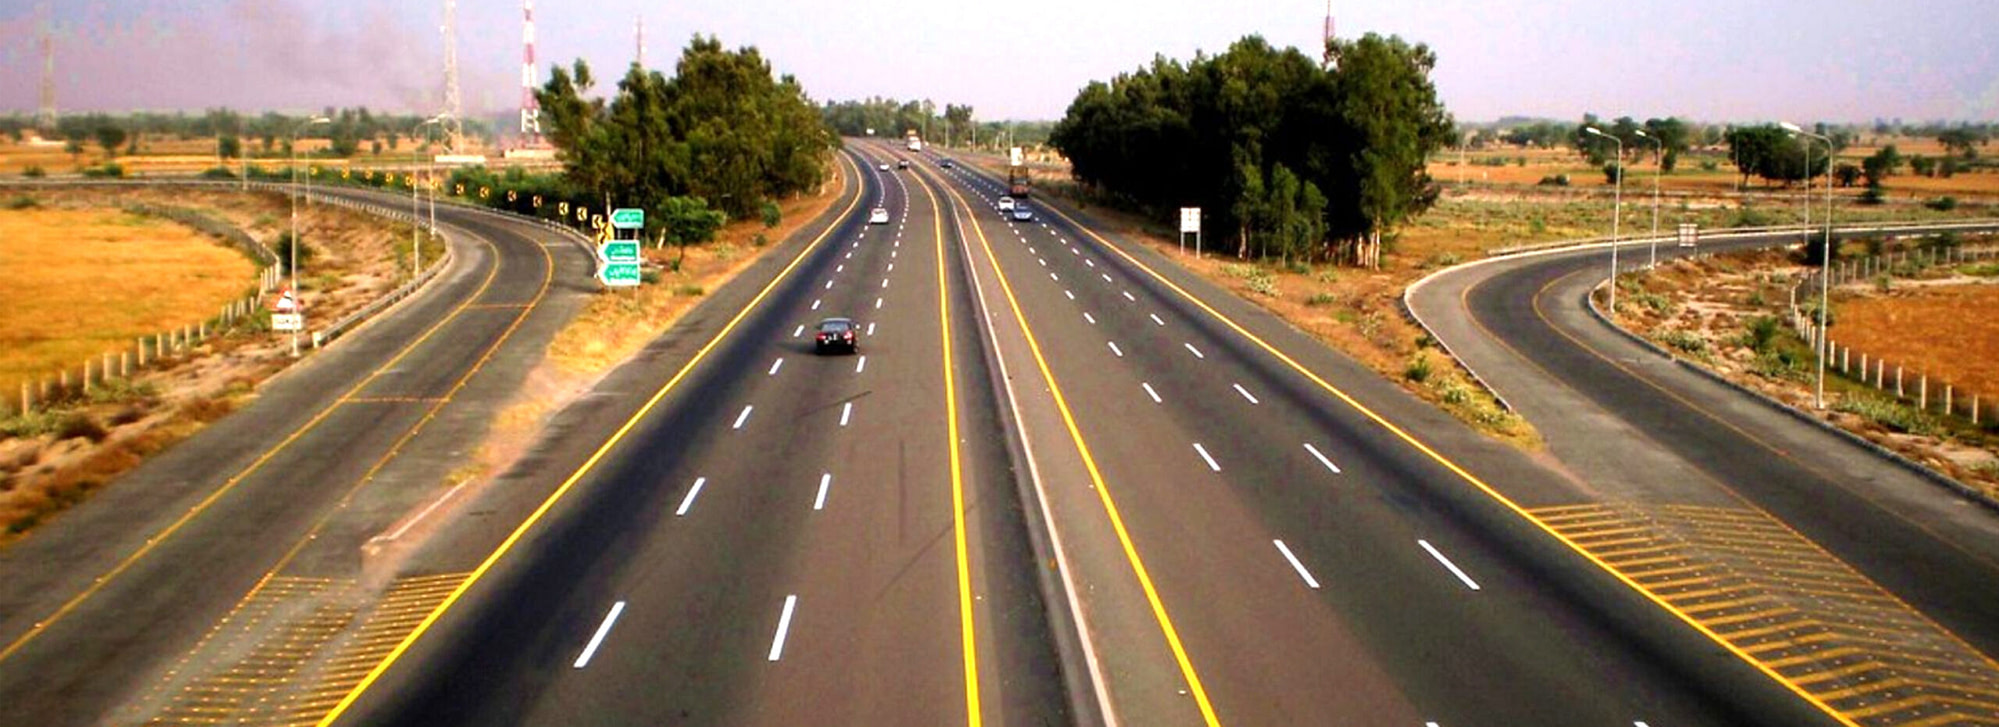 4 HIGHWAYS IN PUNJAB APPROVED FOR THE REVAMP WORK